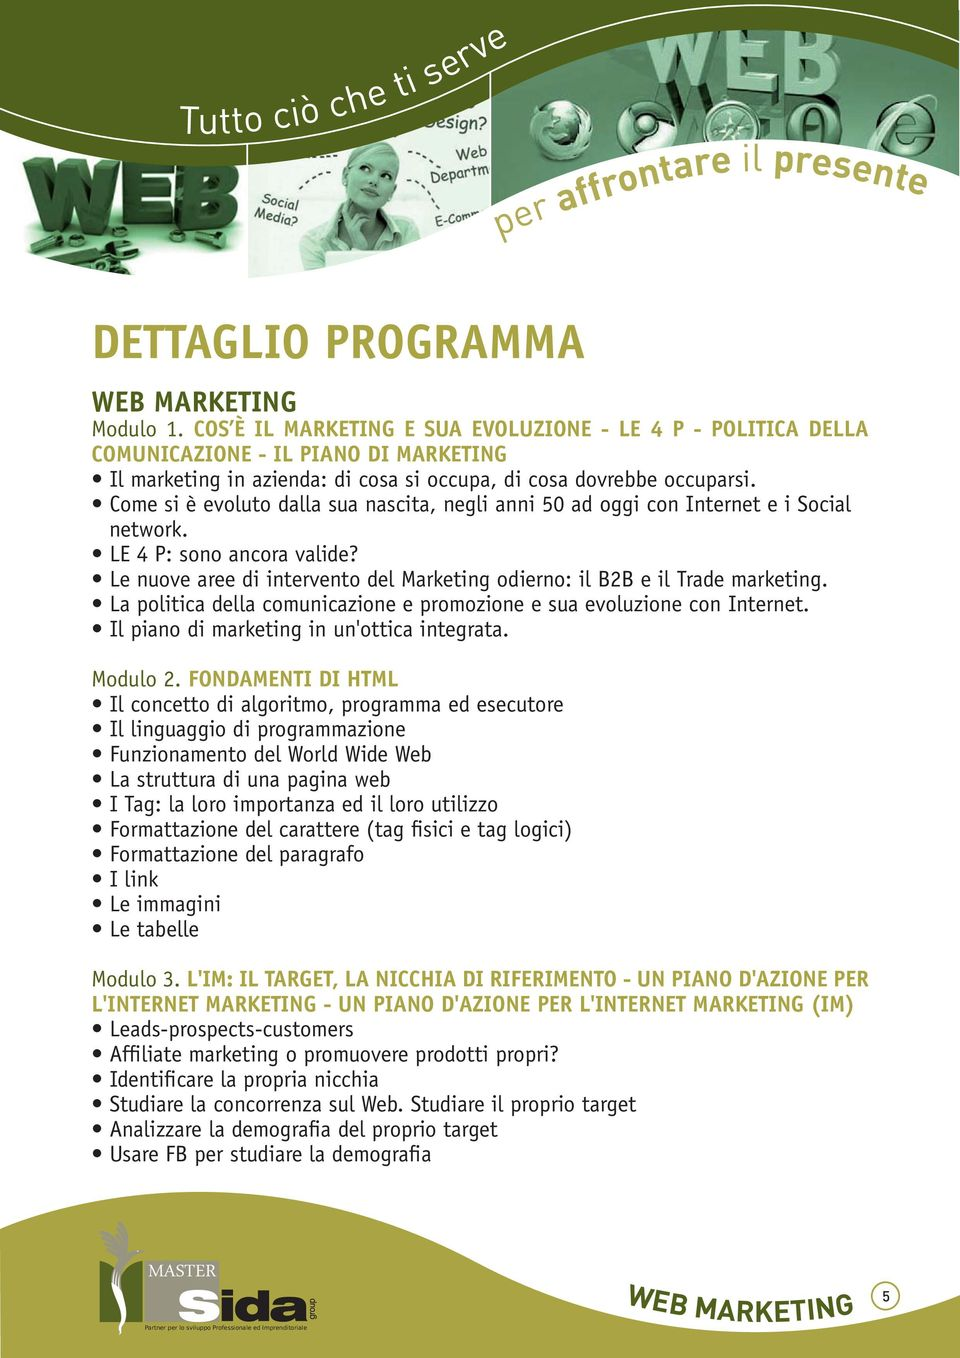 PIANO DI MARKETING network. Modulo 2. FONDAMENTI DI HTML Modulo 3.